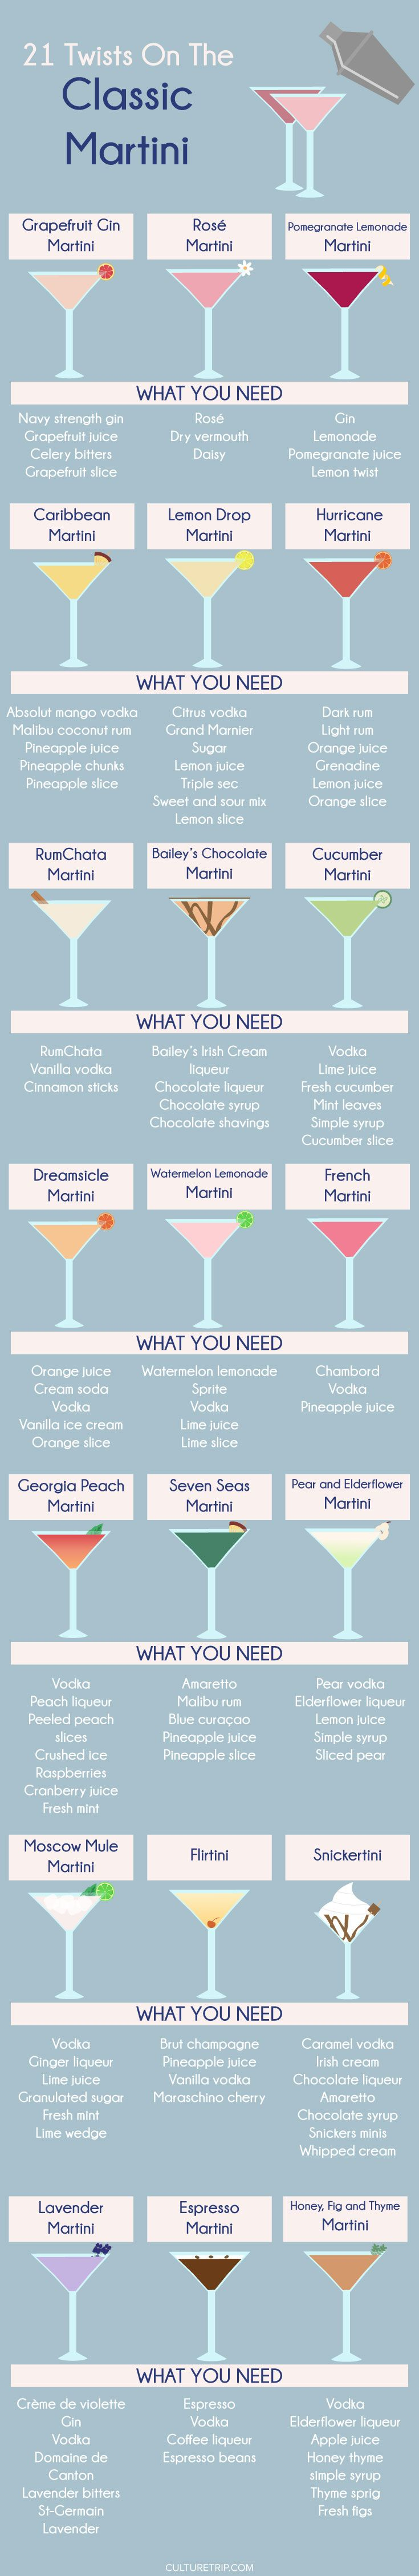 Whether you want to order it shaken, not stirred, or with an extra twist, Culture Trip's martini list will turn you into a glitzy 007.